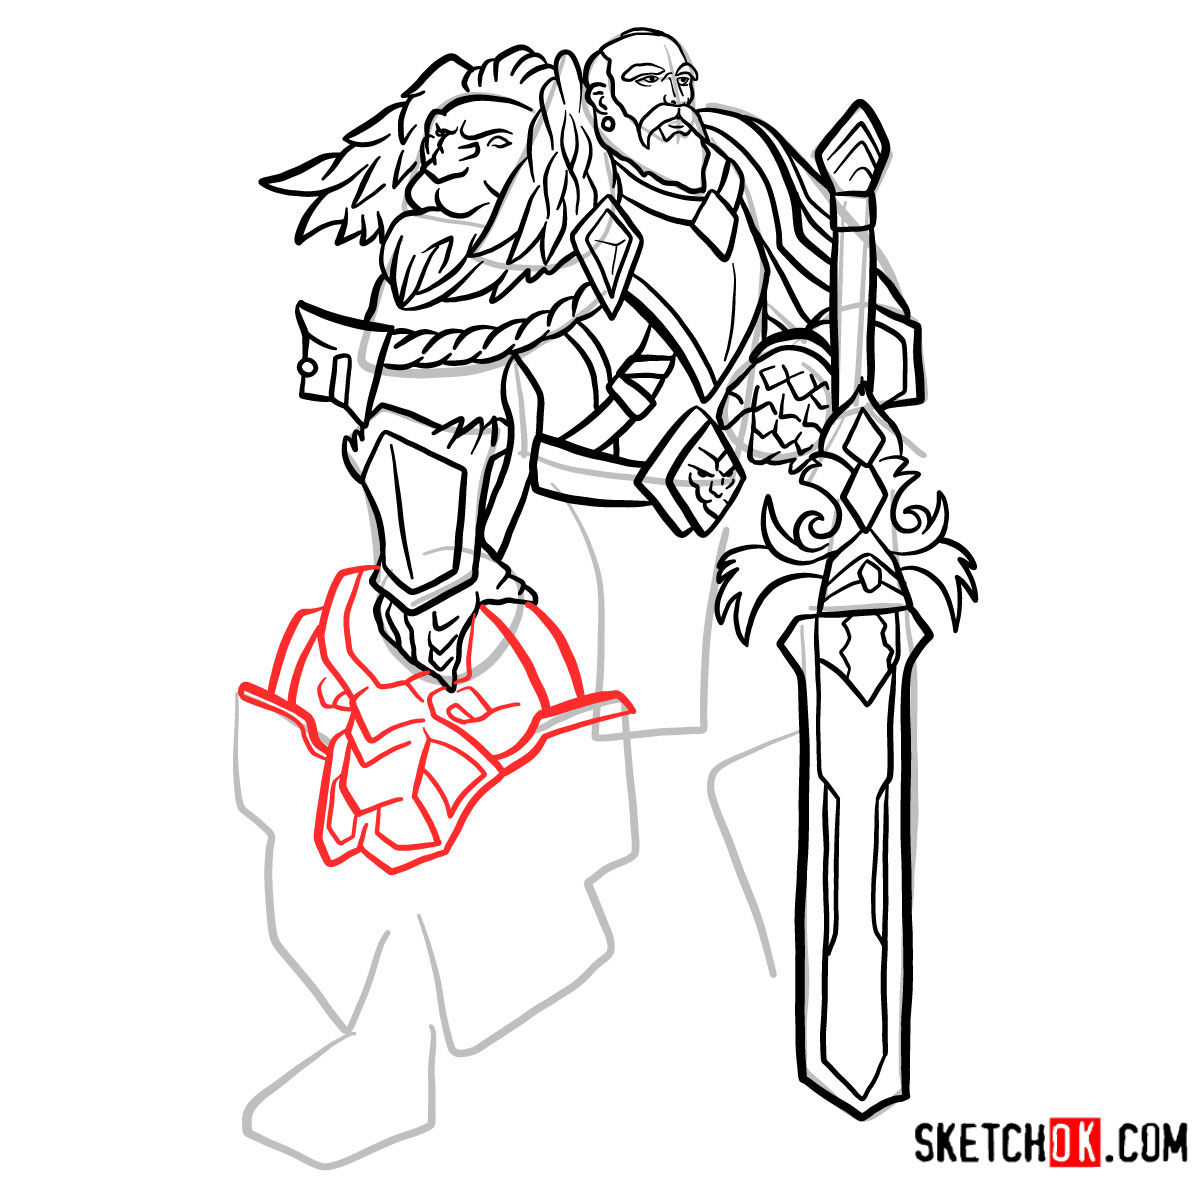 How to draw Lord Anduin Lothar | World of Warcraft - step 14